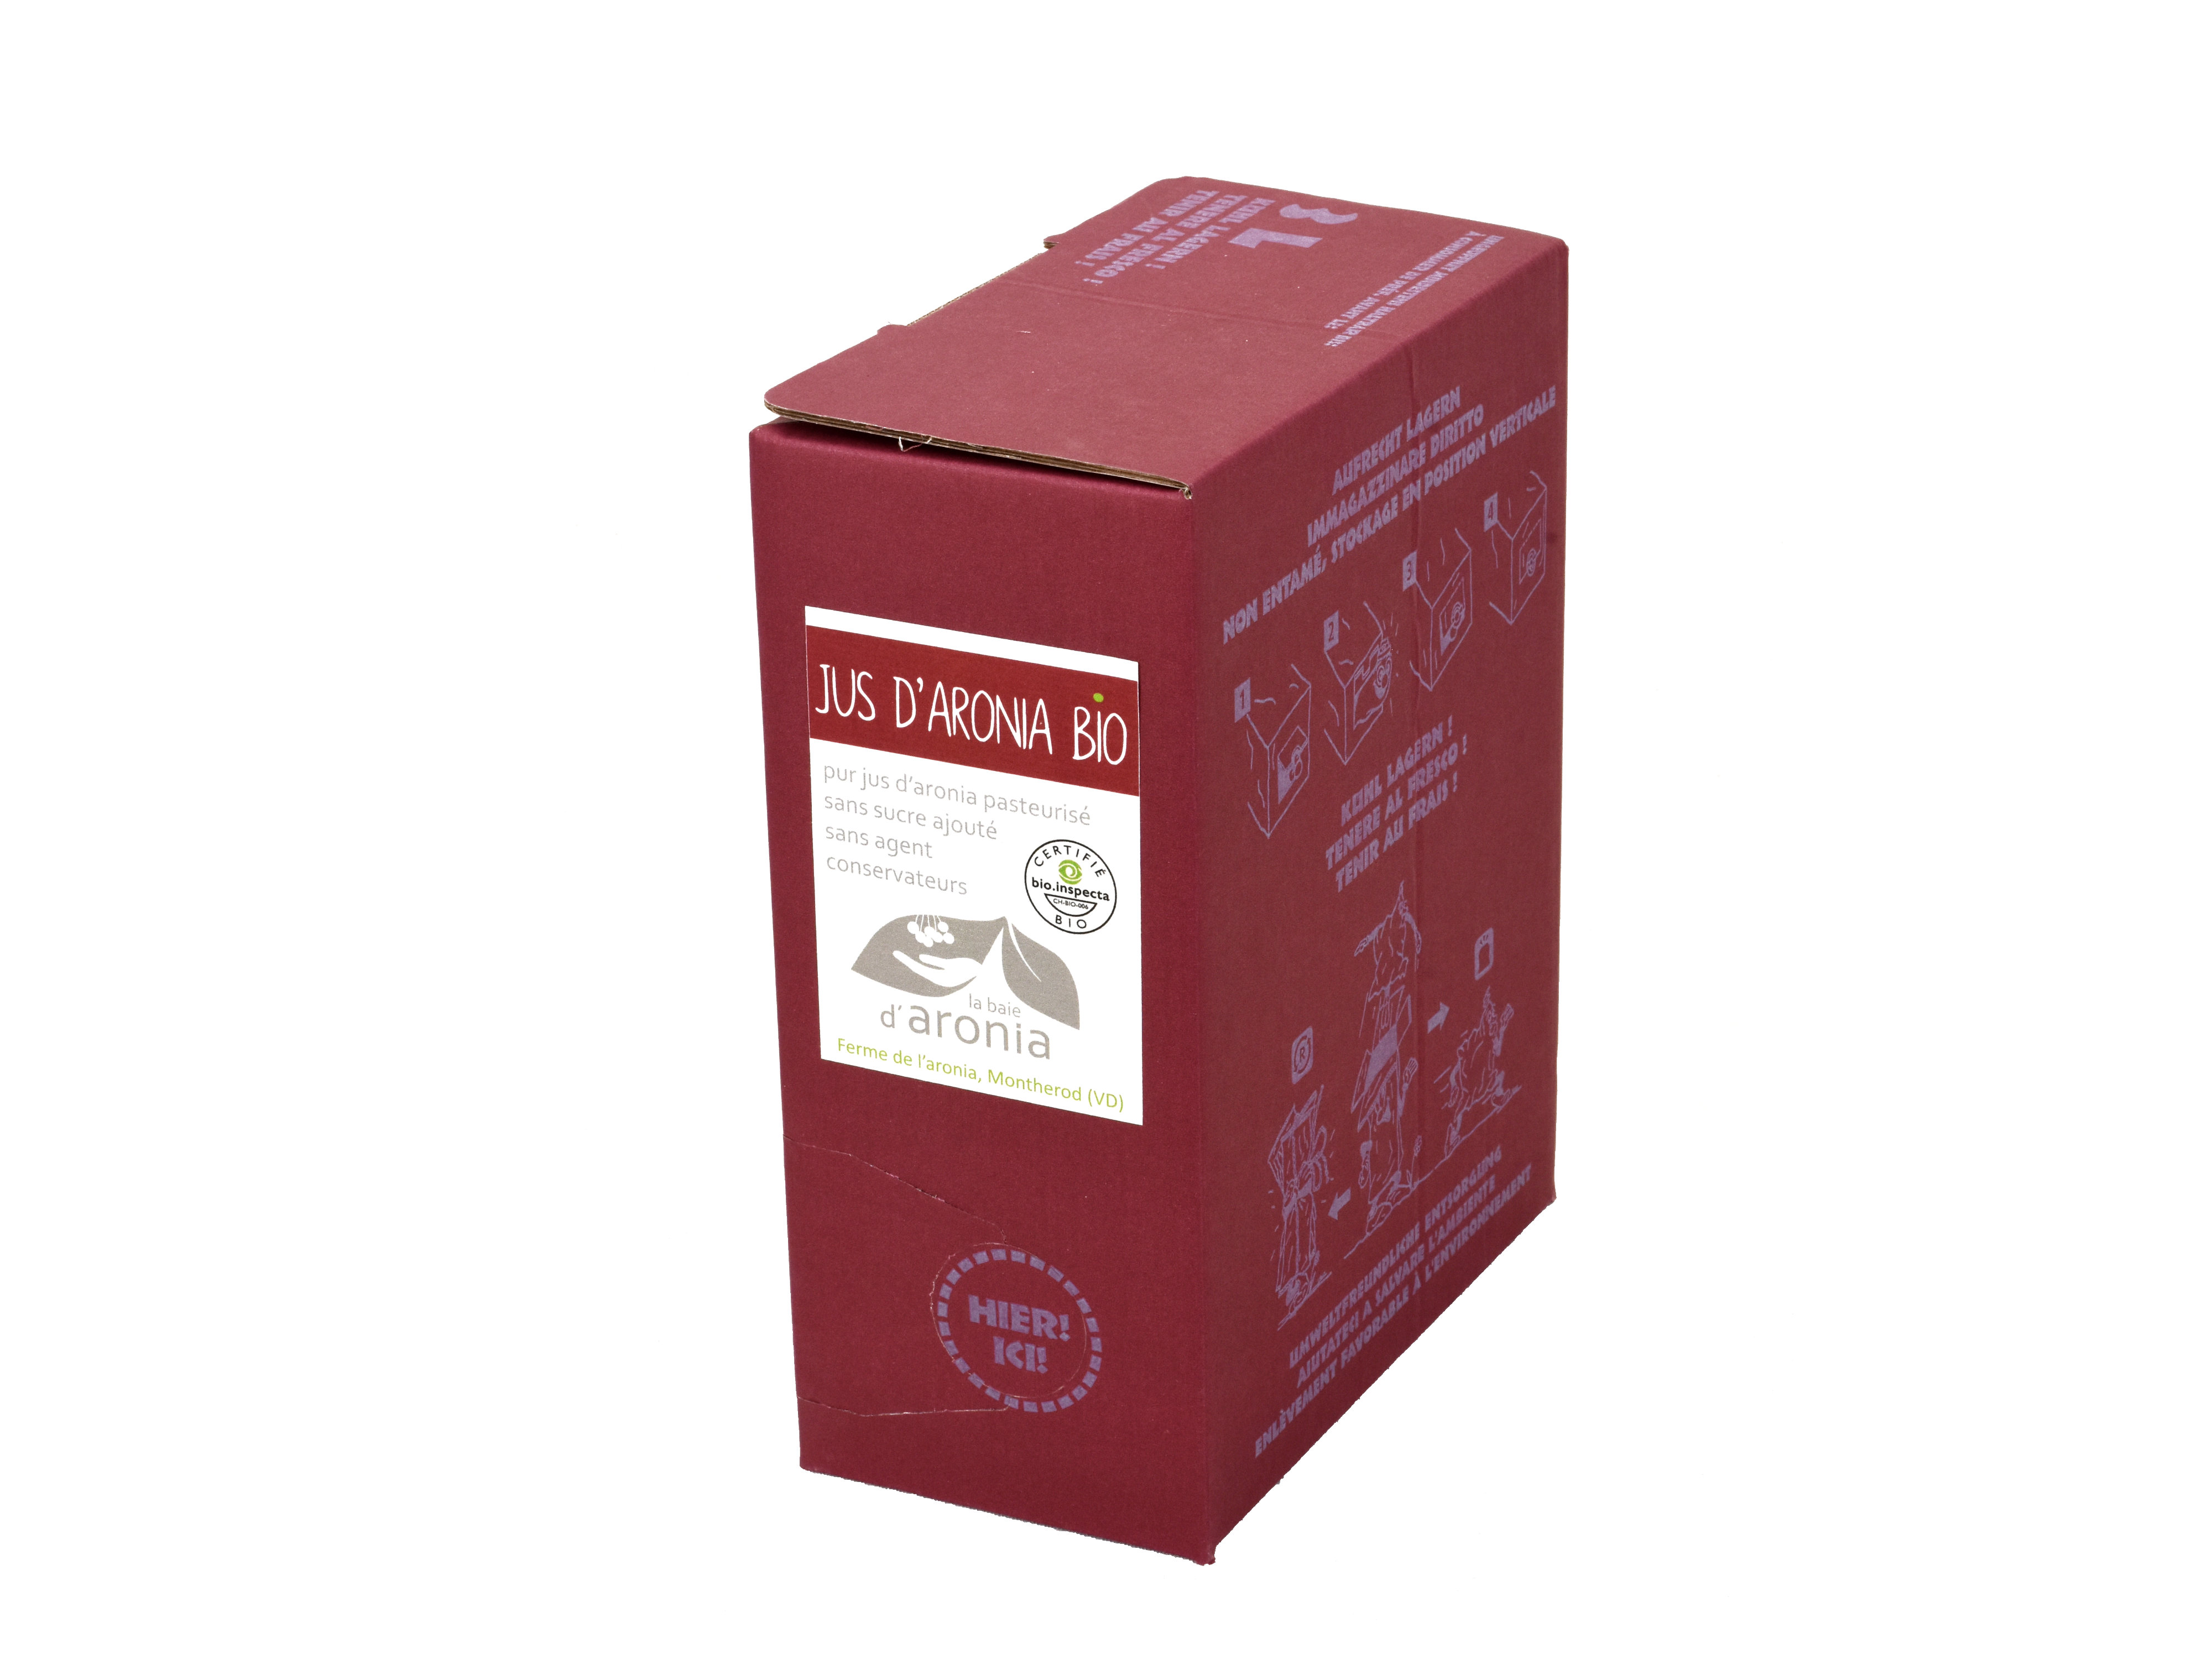 Jus d'aronia, 3 litres